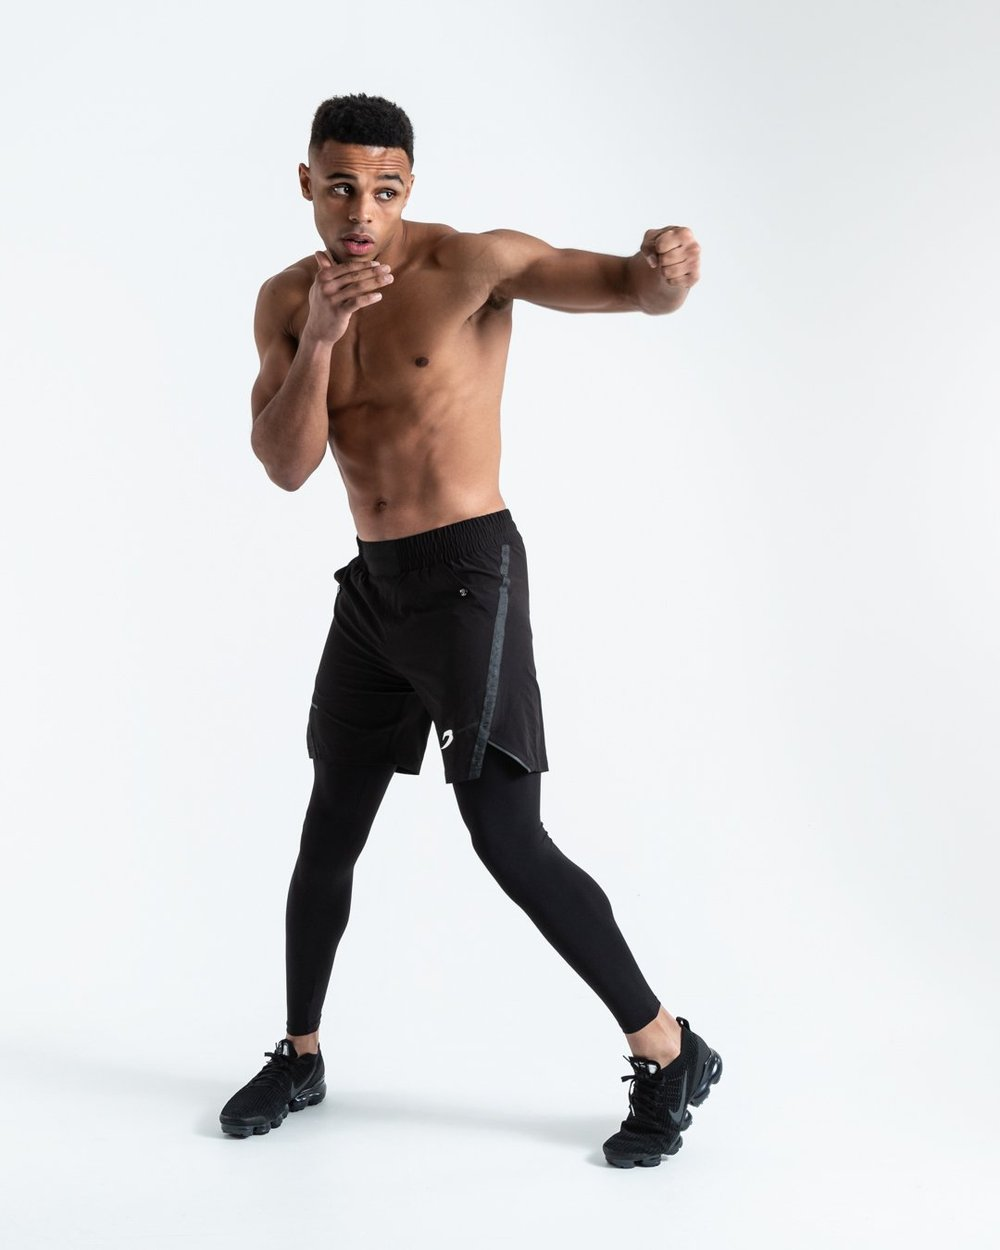 PEP SHORTS (2-IN-1 TRAINING TIGHTS) - BLACK - Pandemic Fight Gear Inc.